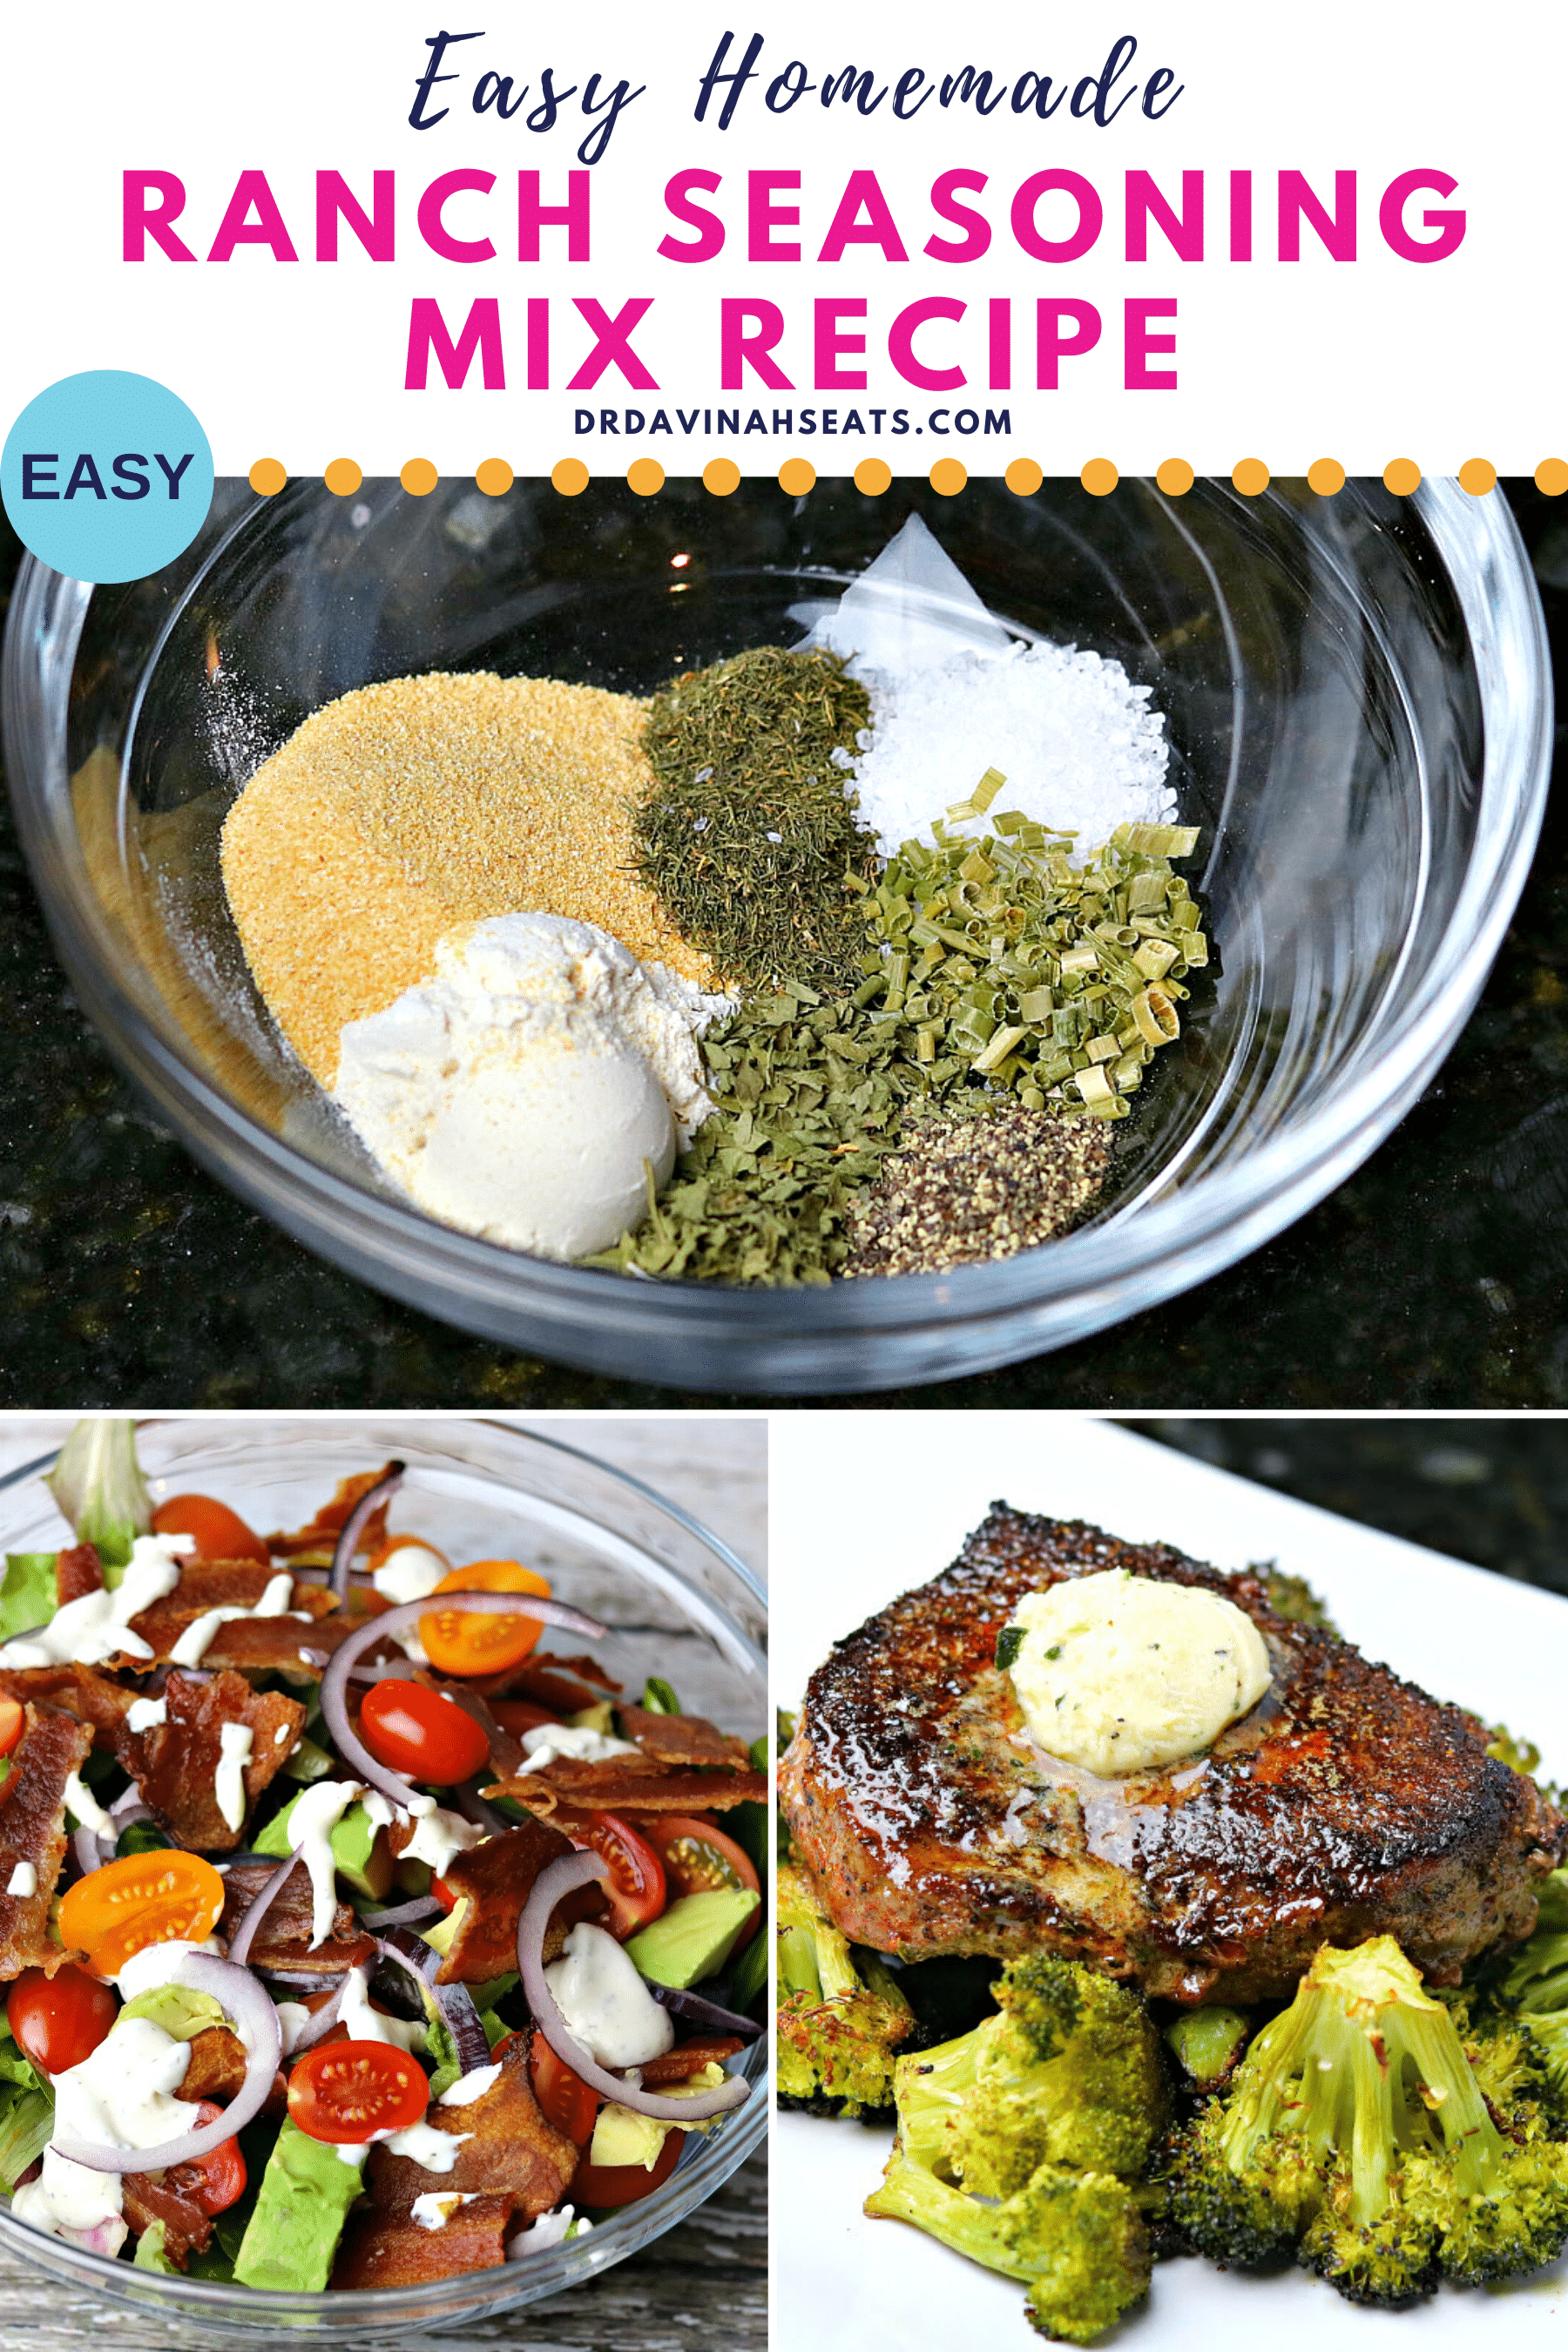 Pinterest image for ranch seasoning mix recipe